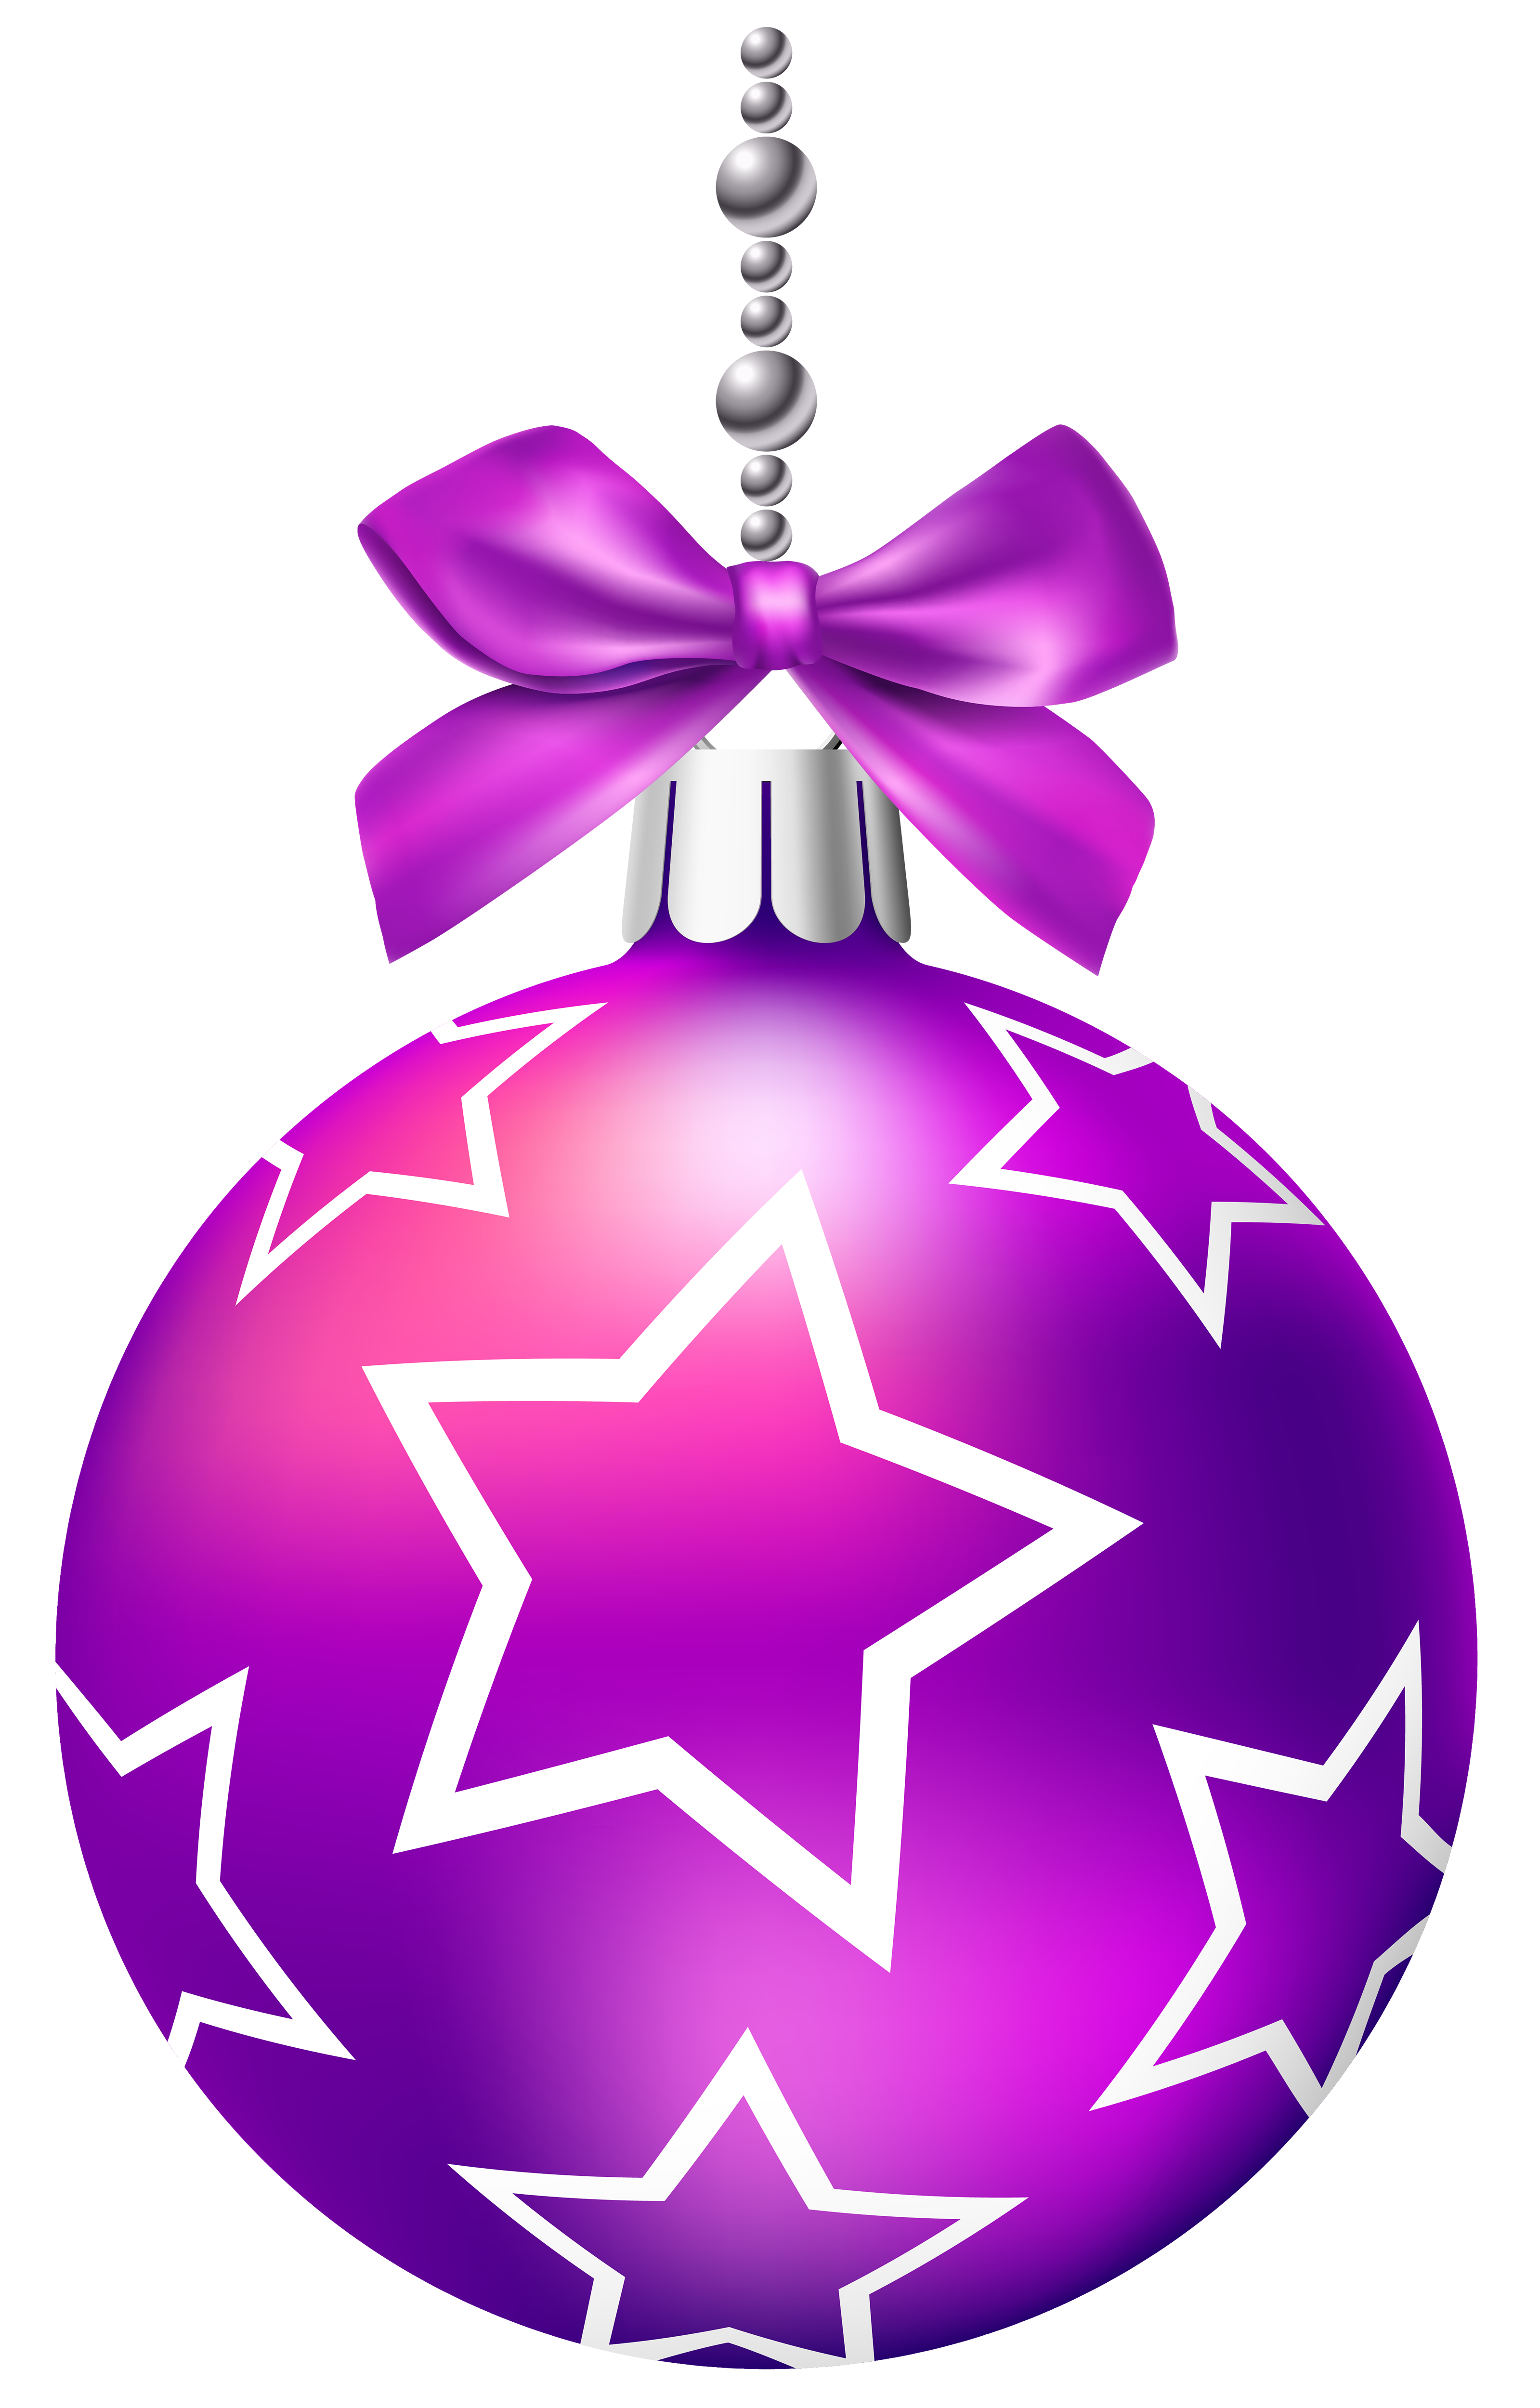 Pink christmas ornaments clipart picture black and white library Purple Christmas Balls PNG Clip Art - Best WEB Clipart picture black and white library